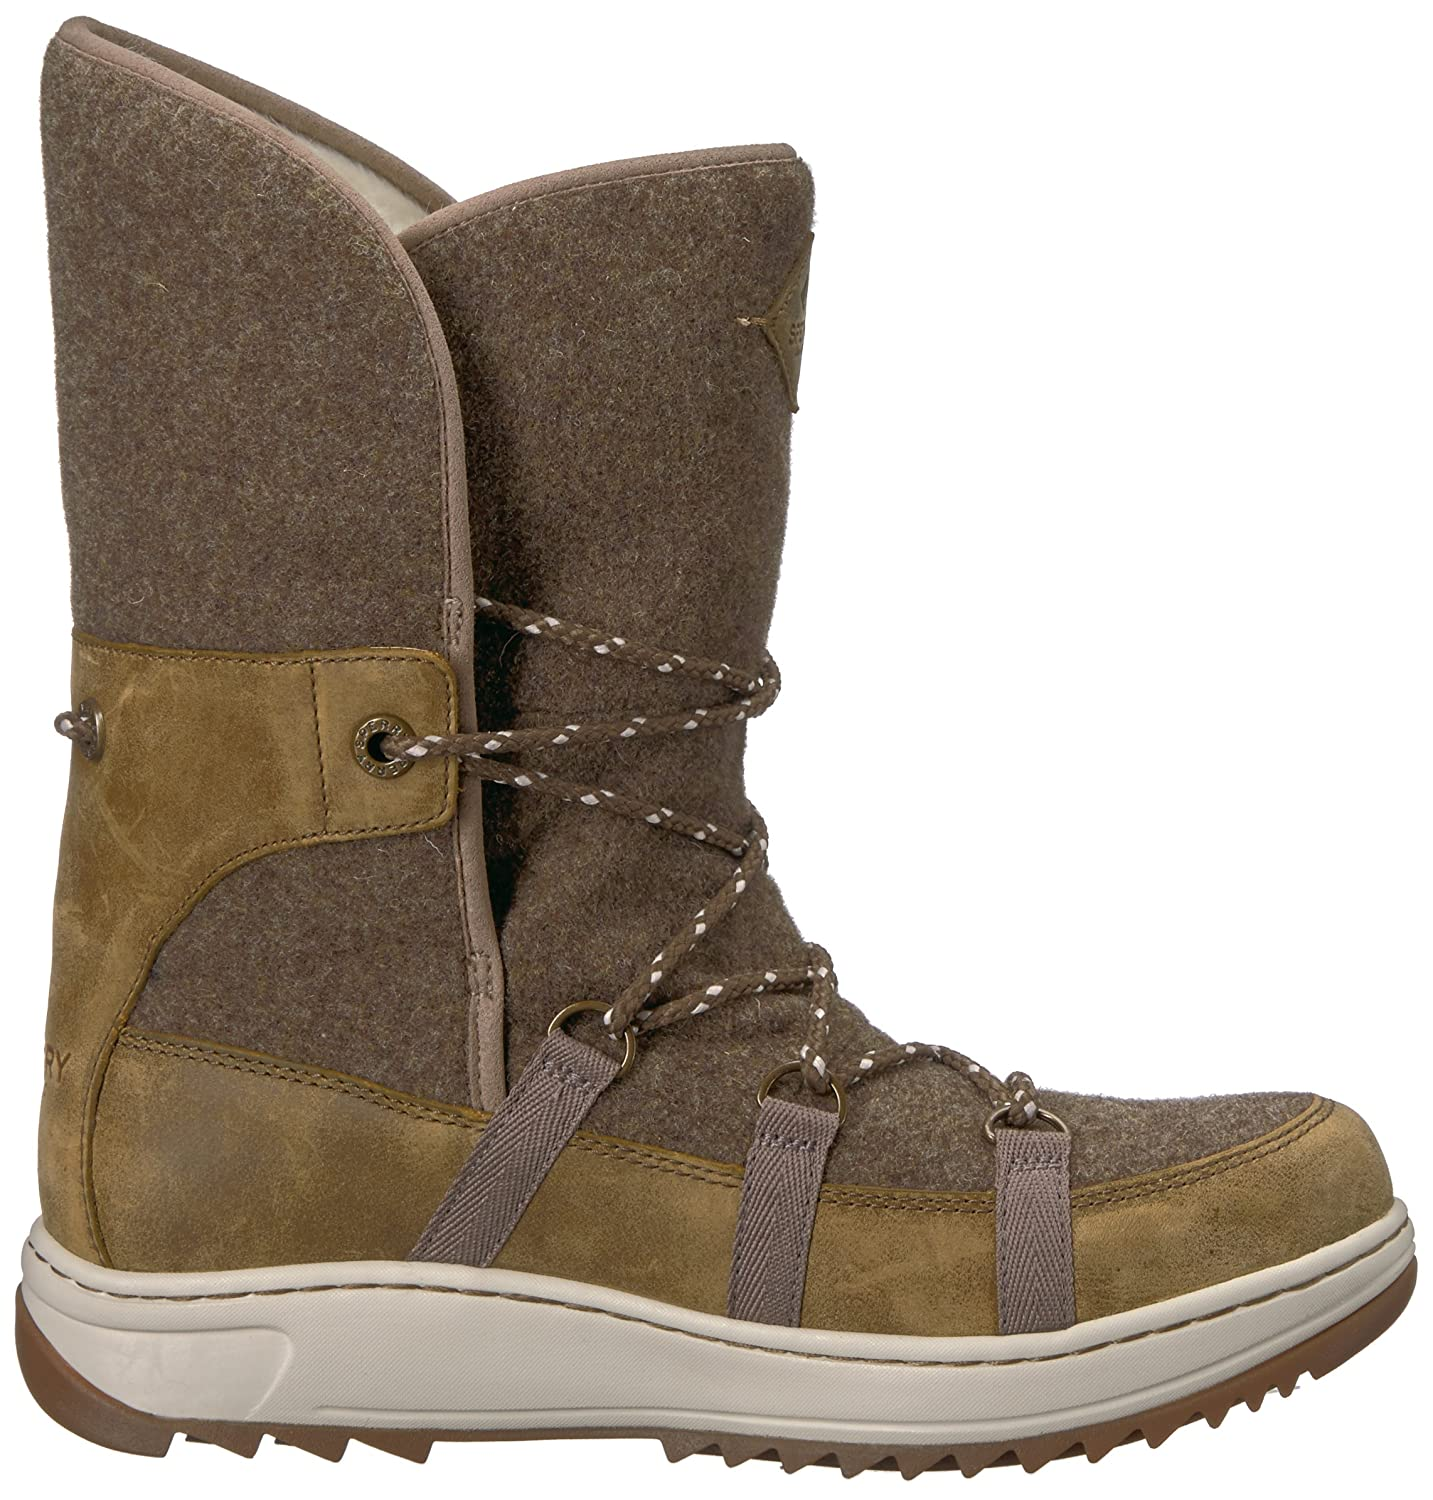 Sperry Cap Top-Sider Women's Powder Ice Cap Sperry Snow Boot B01N6IYWW4 5 B(M) US|Olive e5abae